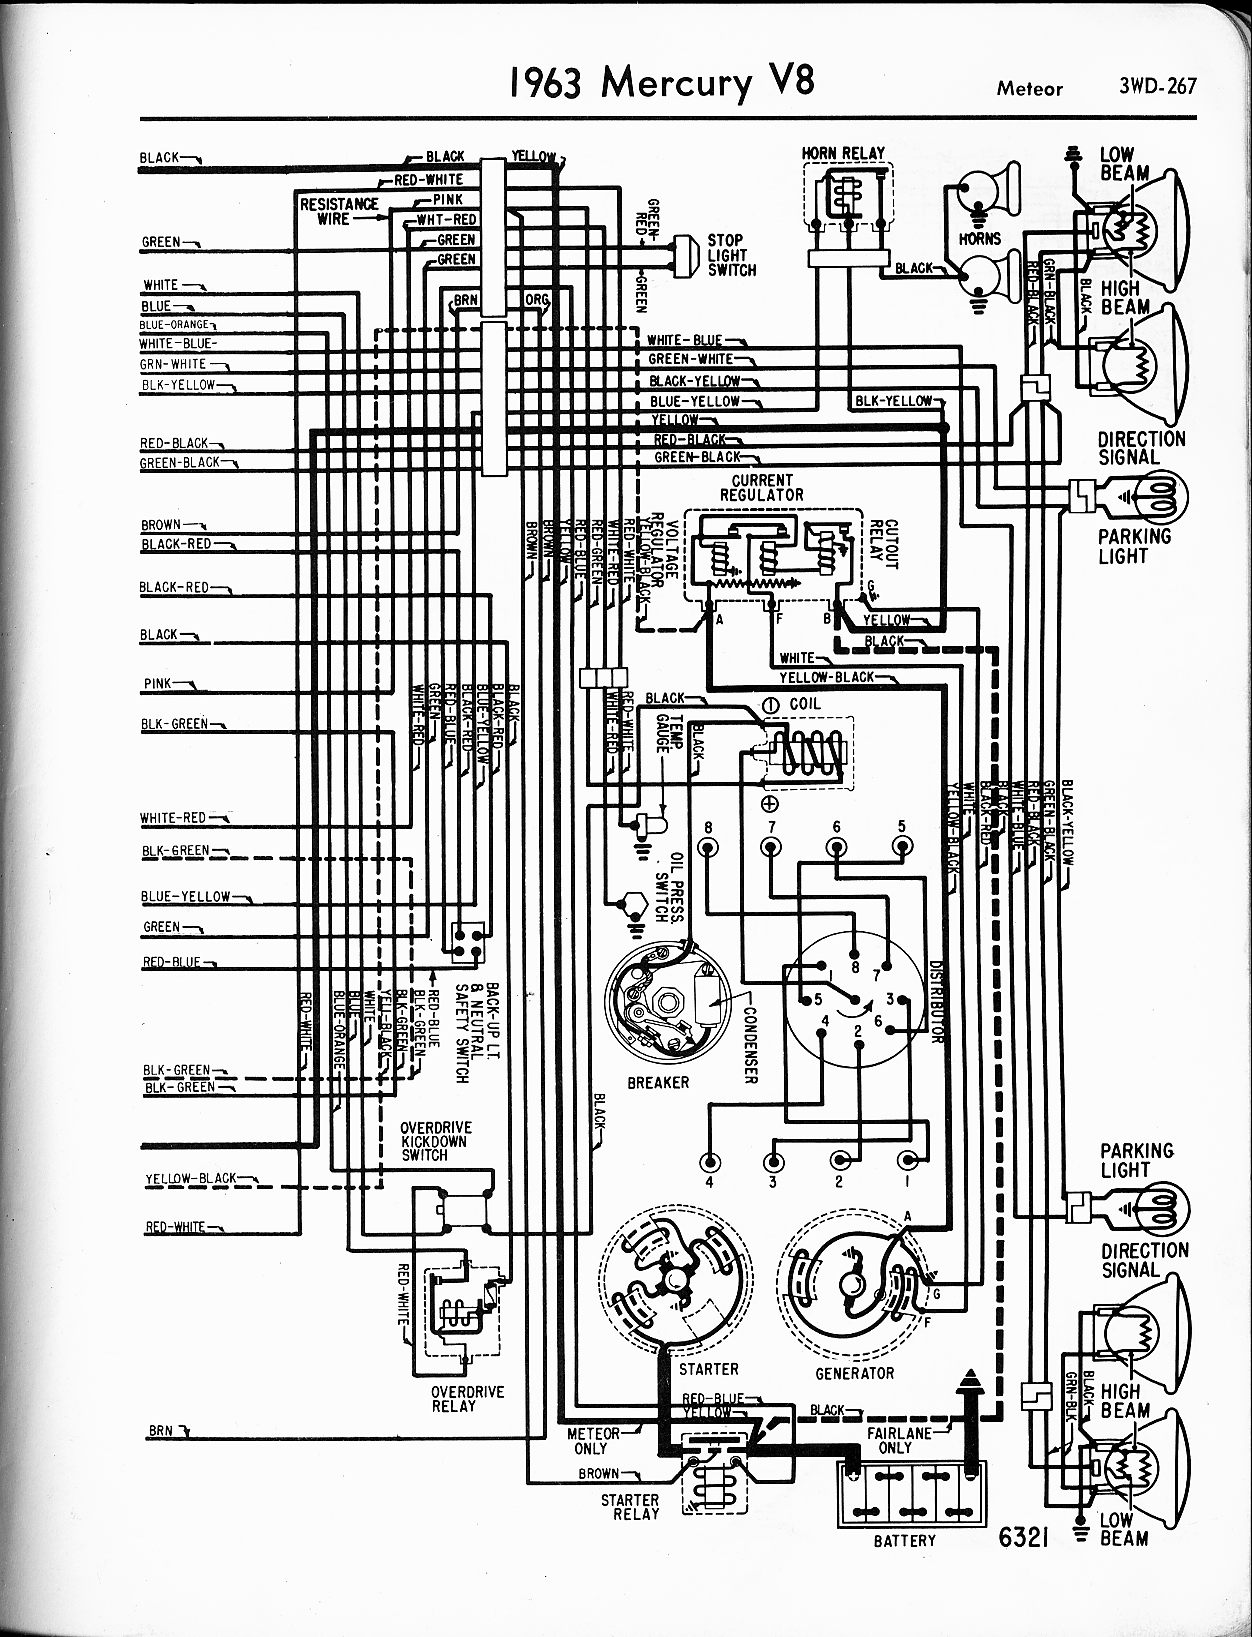 1963 mercury monterey wiring diagram electrical wire symbol rh viewdress  com 1966 mercury 500 wiring diagram Mercury Outboard Wiring Schematic  Diagram